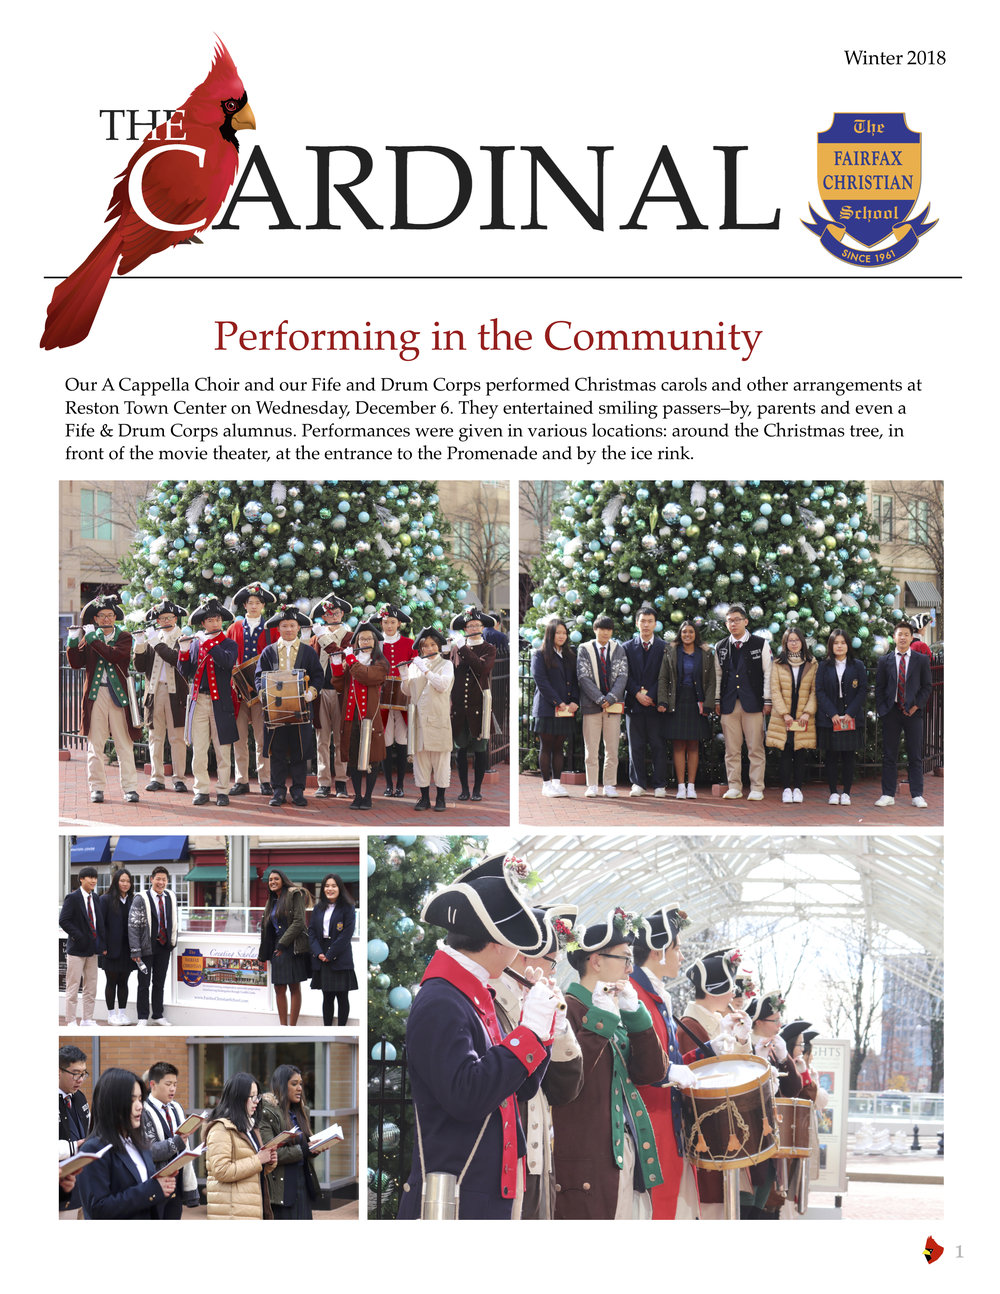 The Cardinal Winter 2018